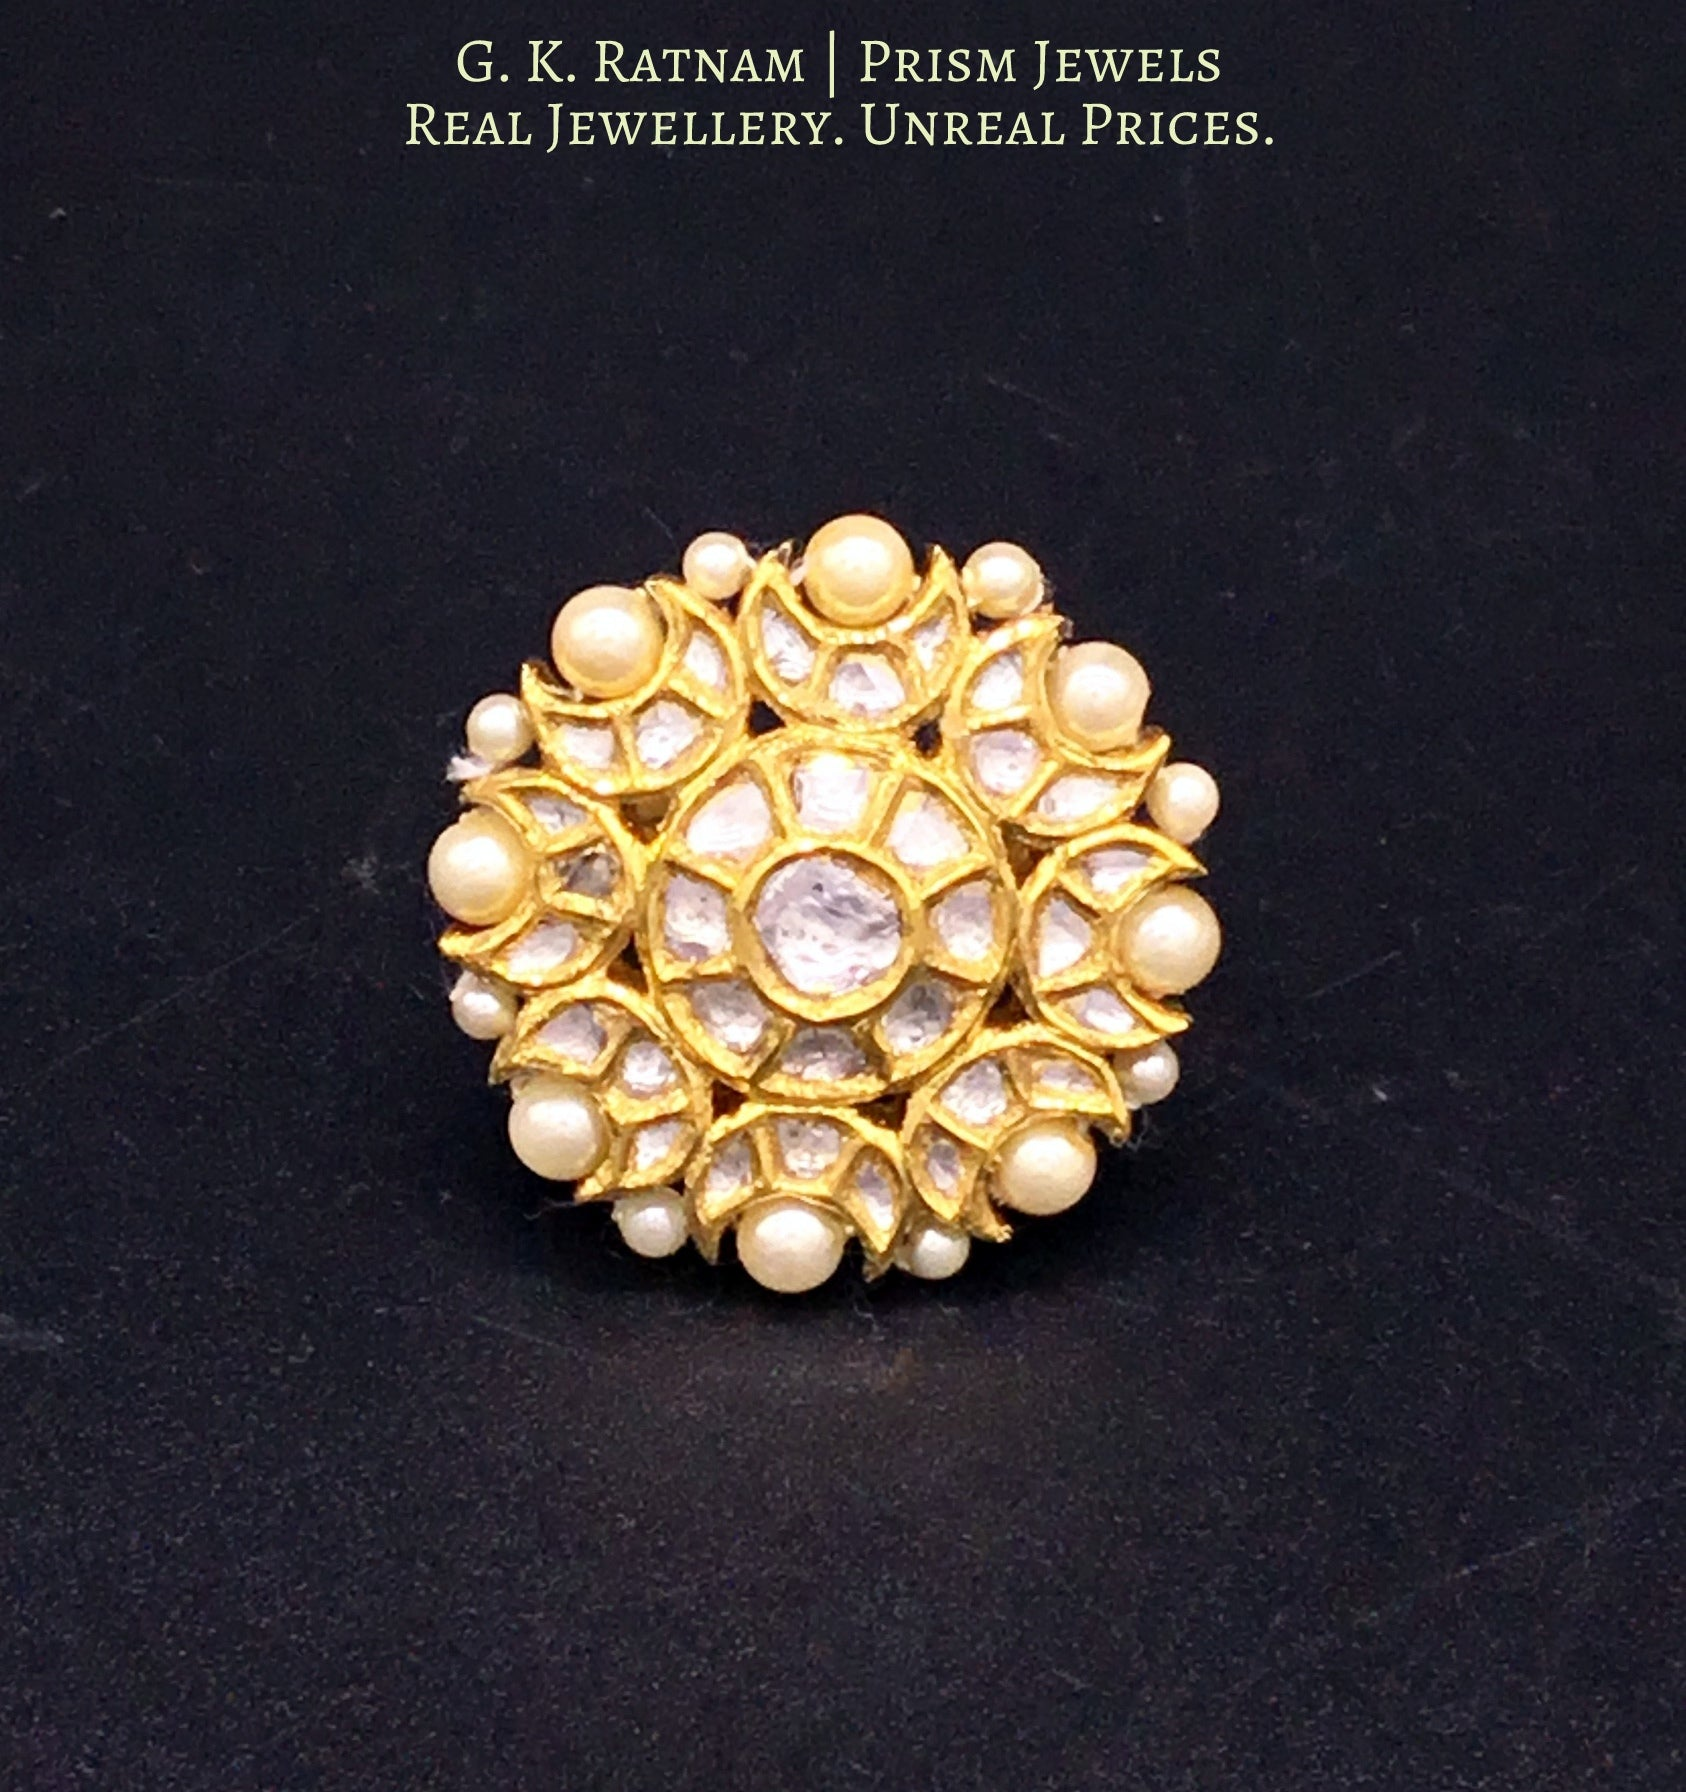 18k Gold and Diamond Polki Round Ring with Pearl Border - gold diamond polki kundan meena jadau jewellery